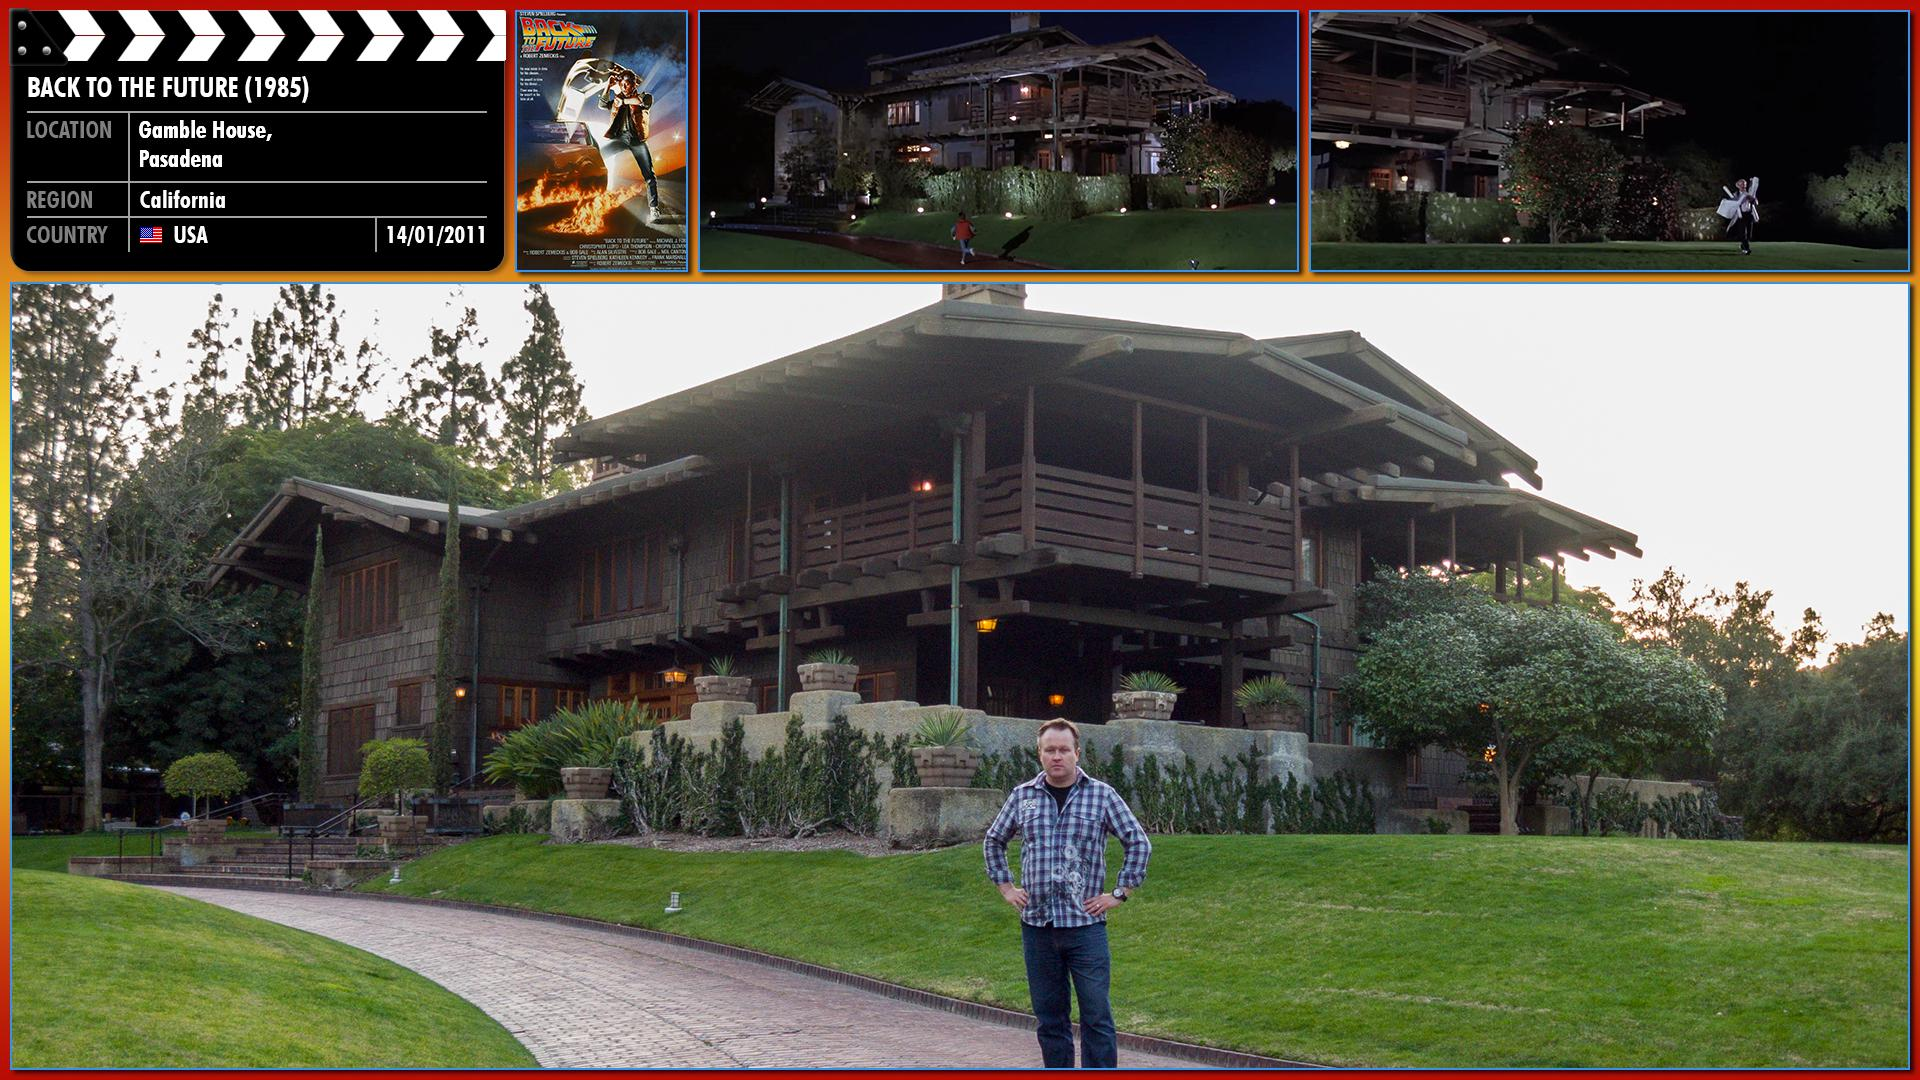 Filming location photo for Back to the Future (1985) 4 of 13